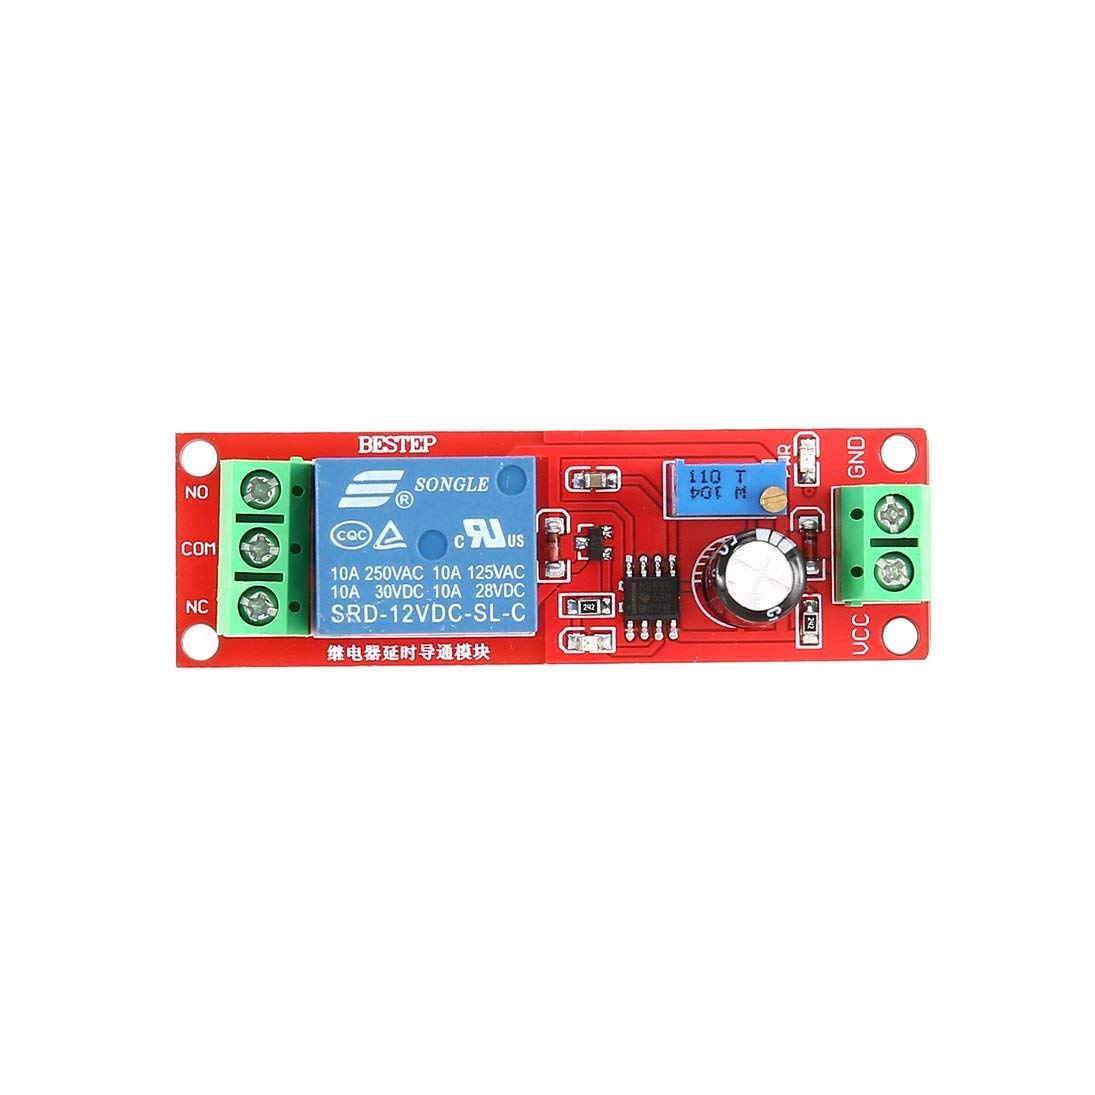 Baynne DC 12V NE555 Monostable Delay Relay Circuit Conduction Module Trigger Switch Timer Adjustable Time Shield Electronics Arduino by Baynne (Image #5)